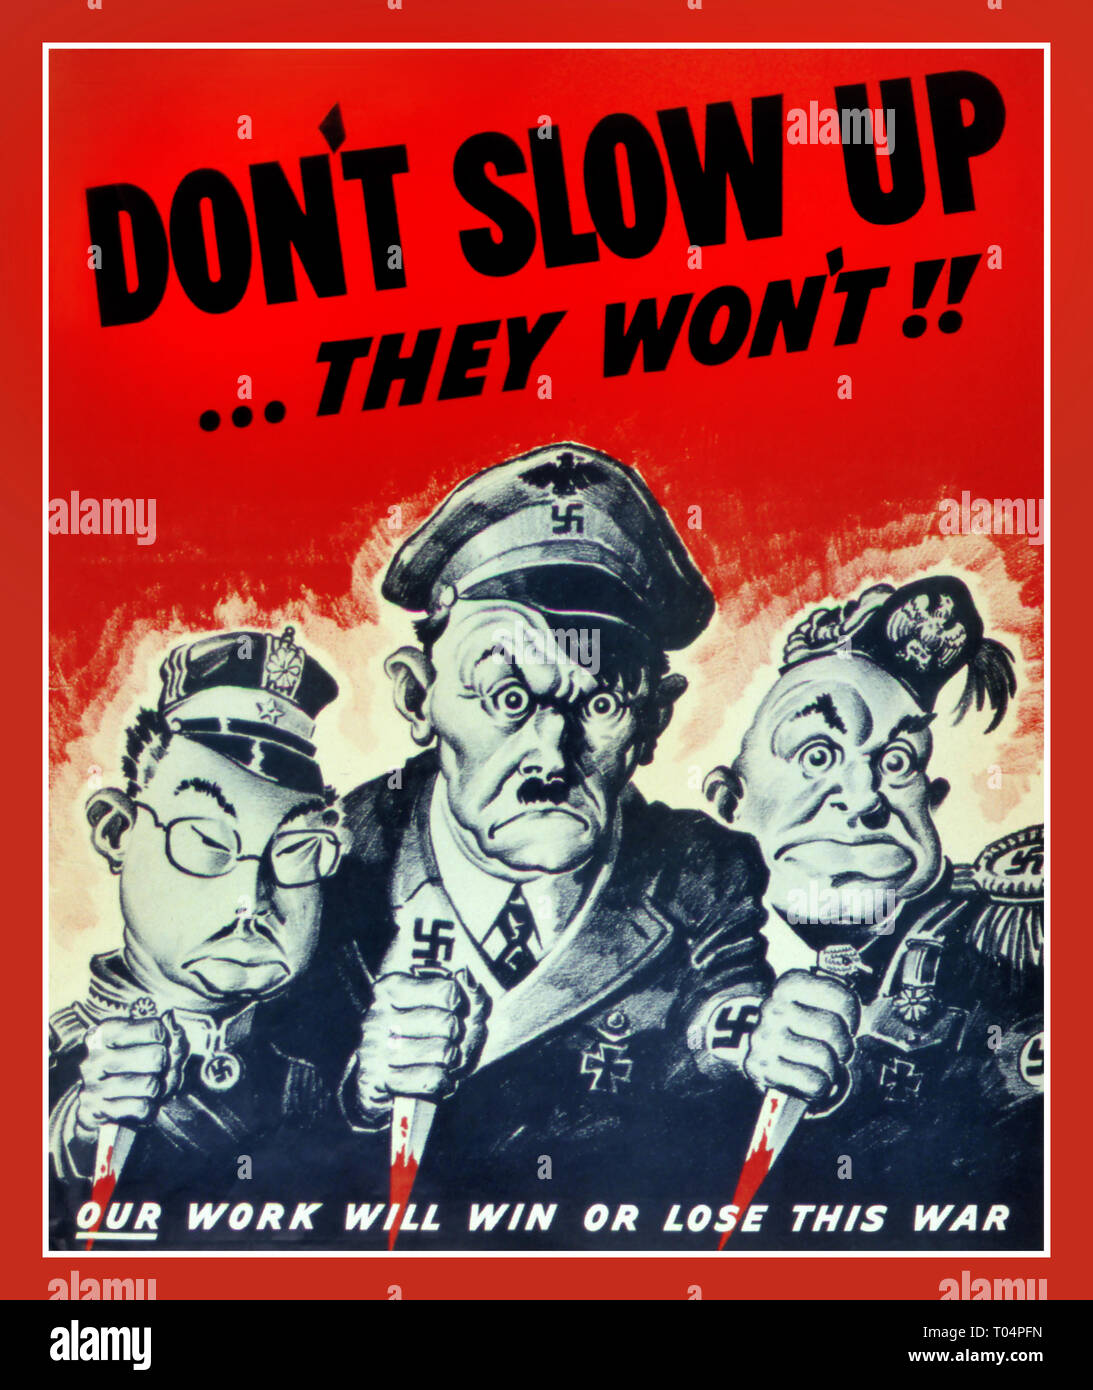 WW2 Propaganda Poster feauturing Hirohito, Hitler and Mussolini 'Don't Slow Up...They Won't!!' circa 1943 - Stock Image